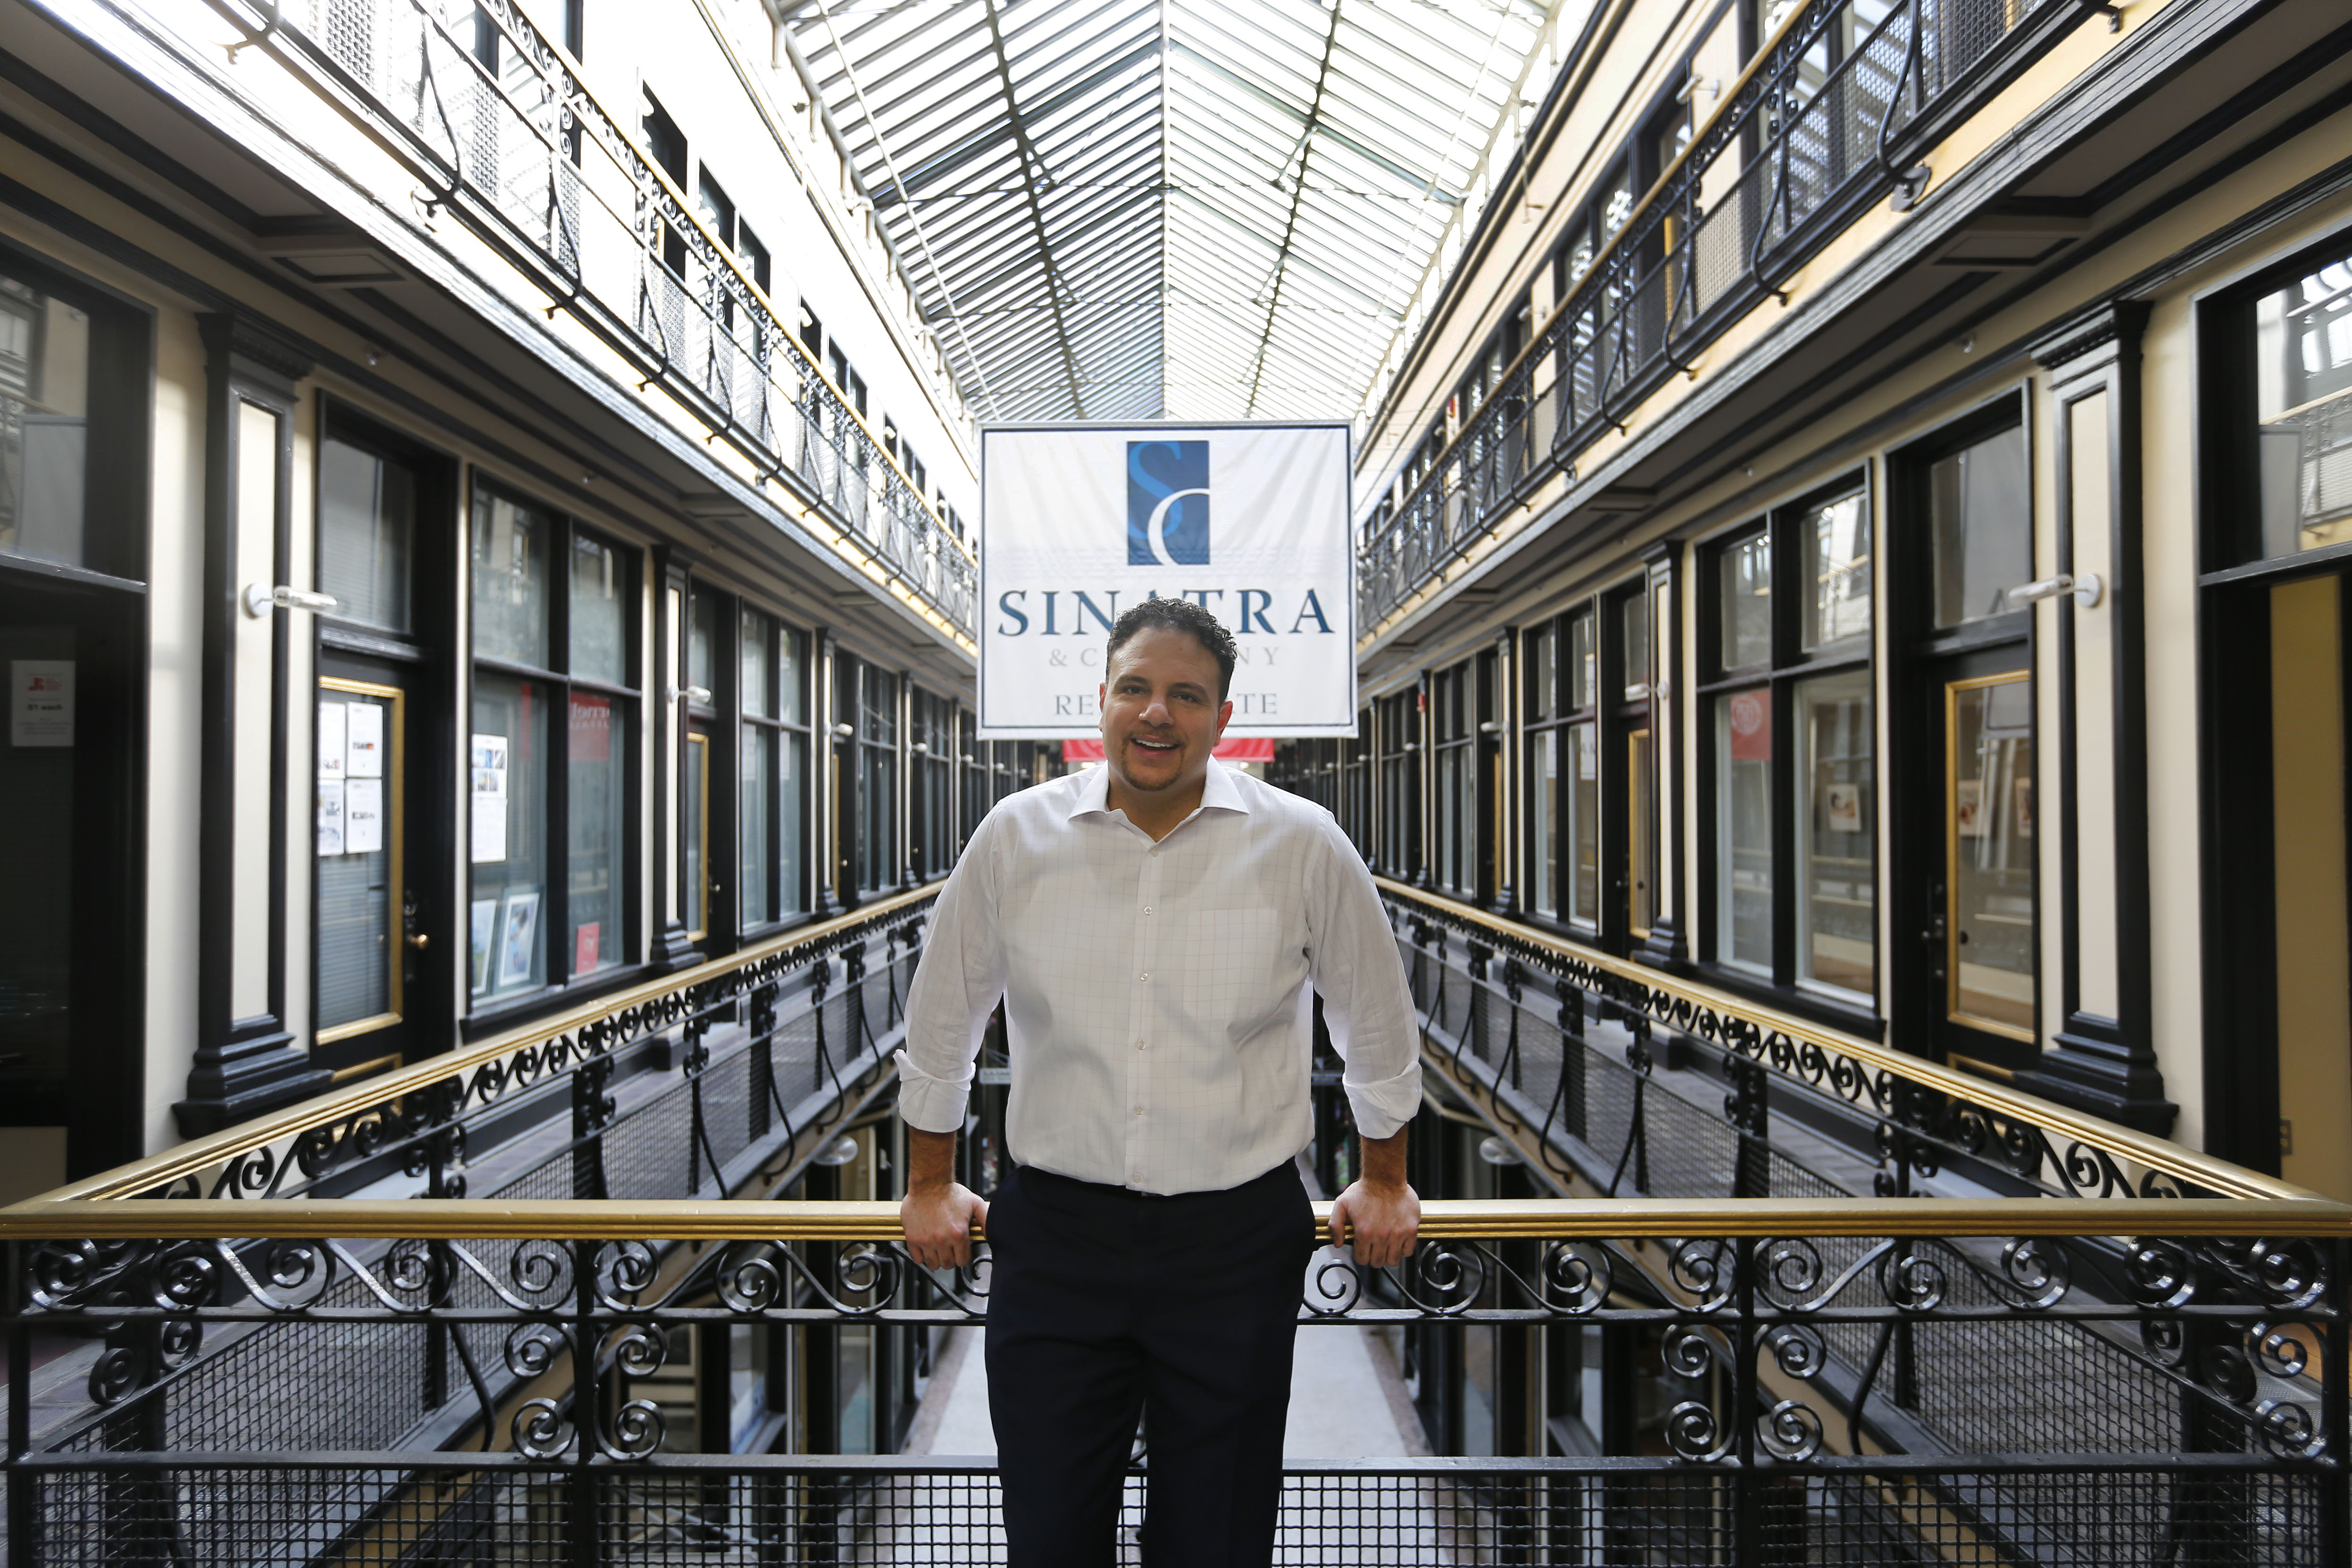 Nick Sinatra at the Market Arcade Building, which he owns, in Buffalo Tuesday, February 14, 2017.       (Mark Mulville/Buffalo News)